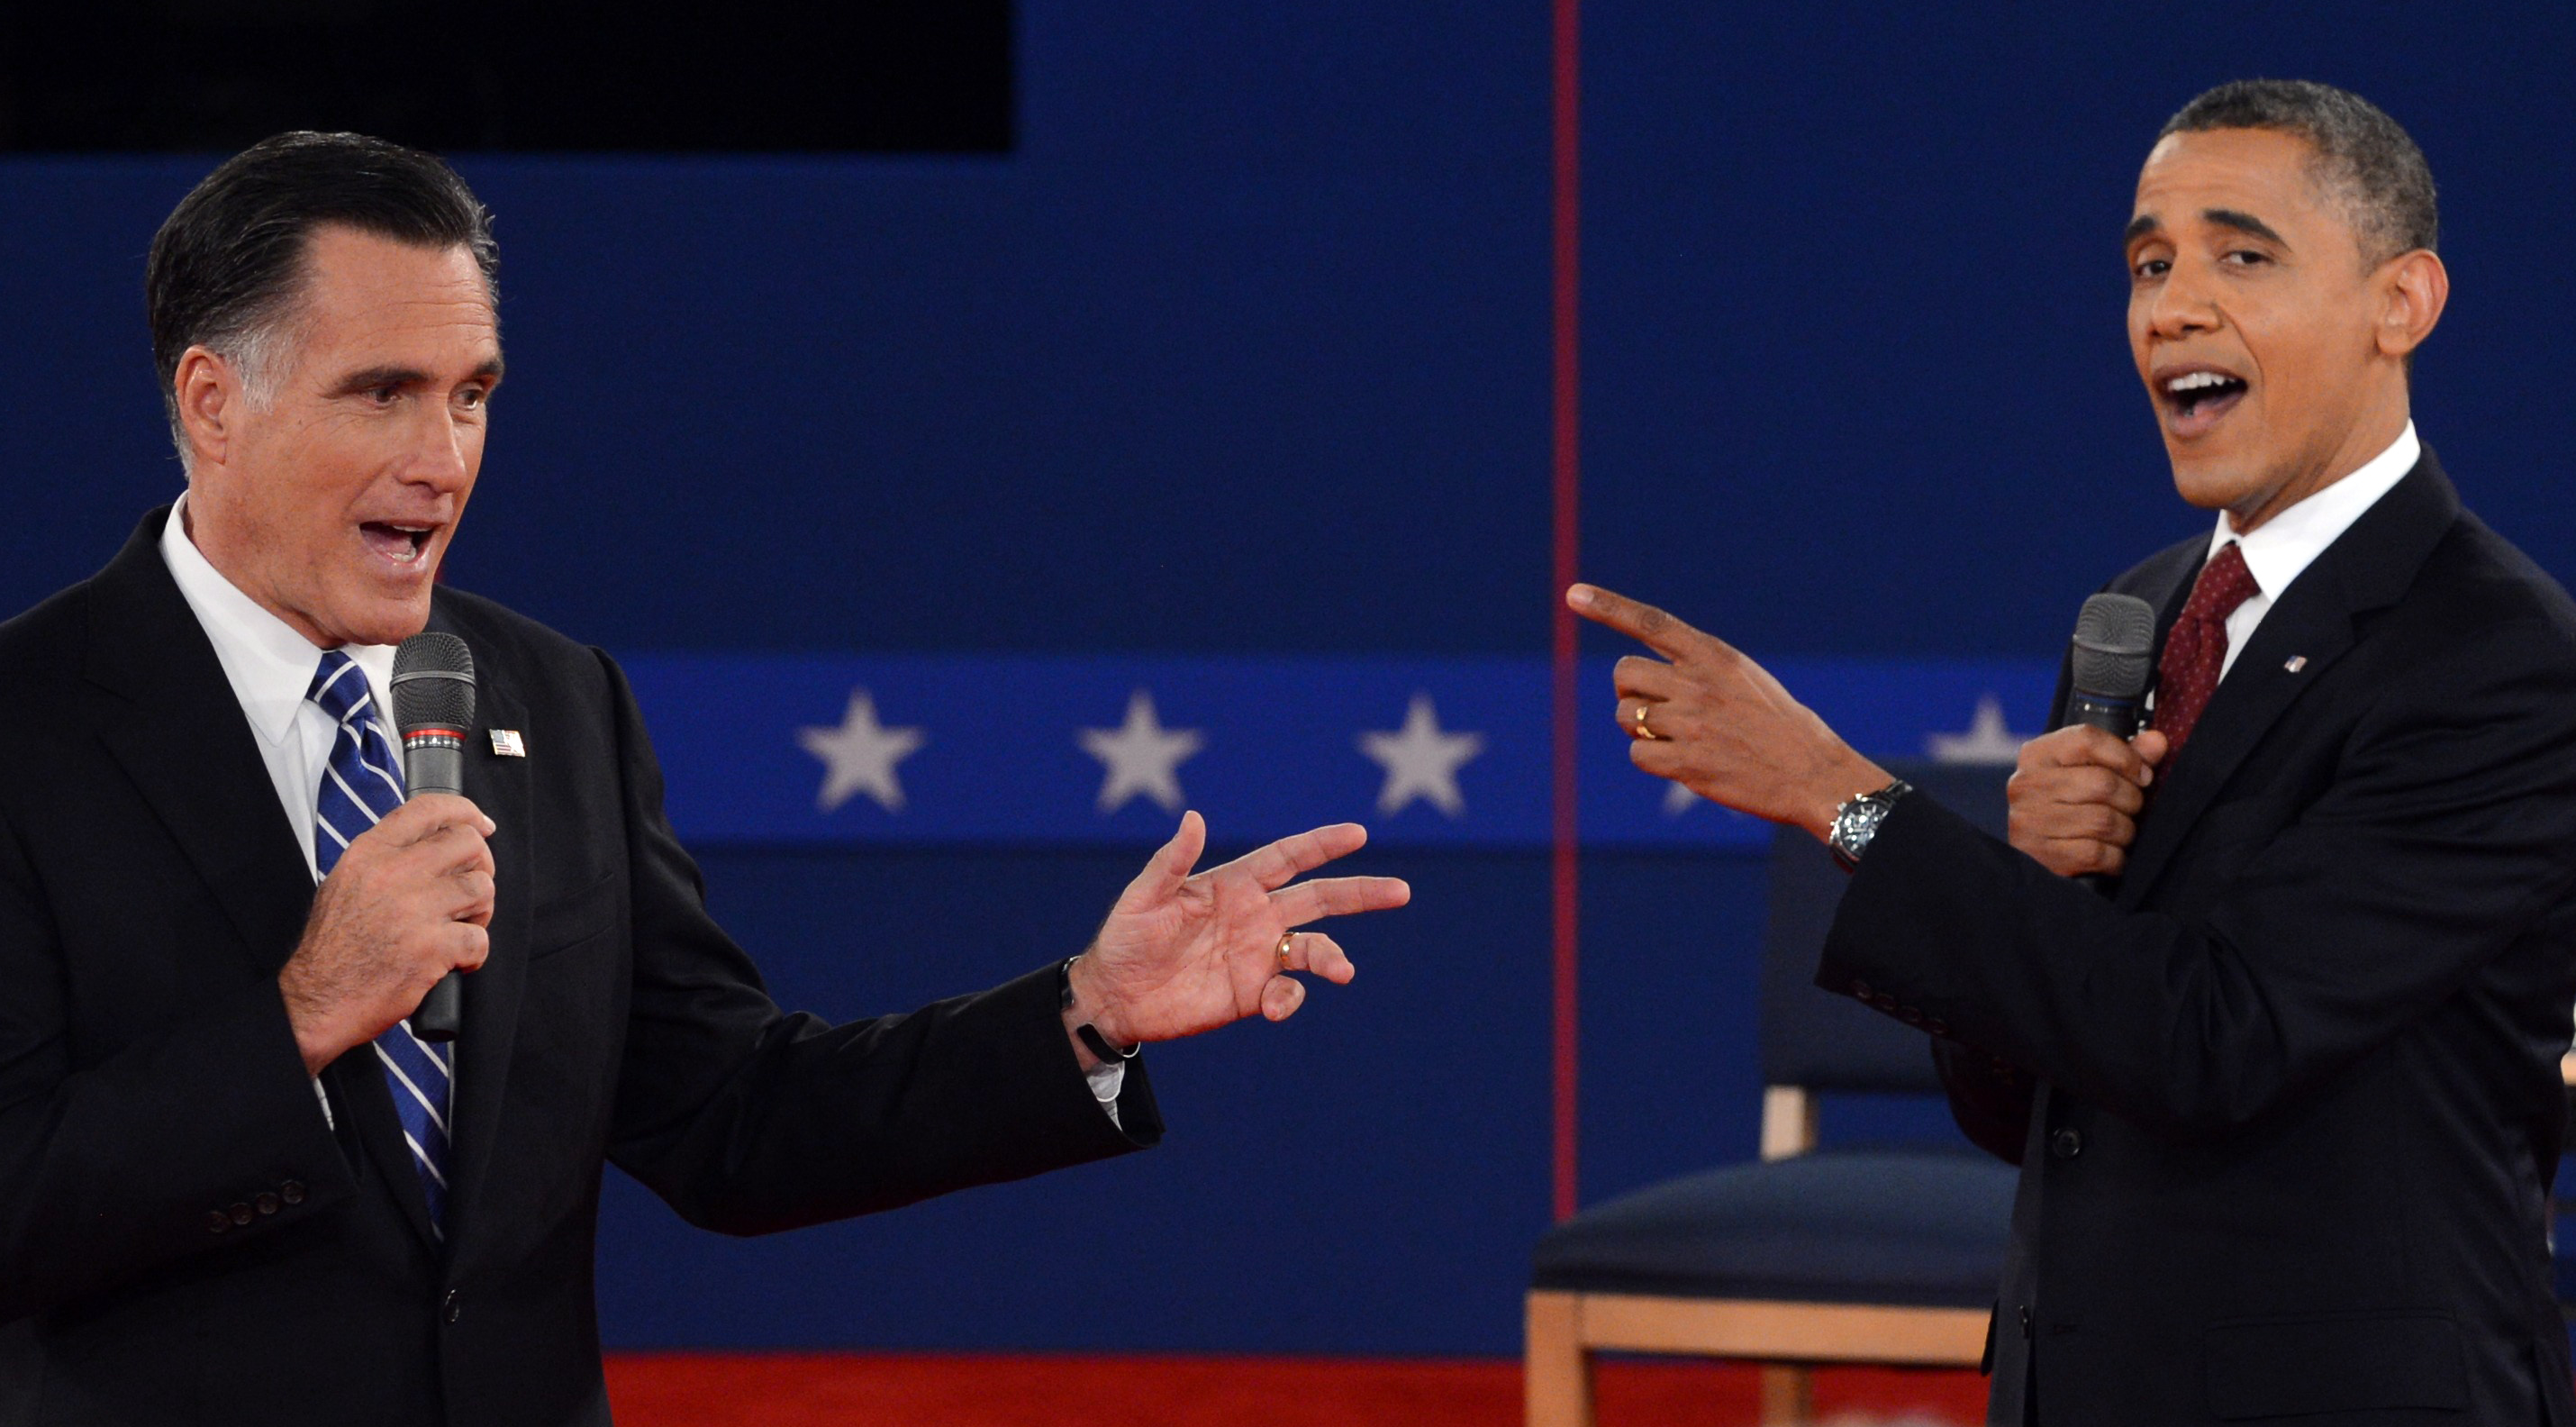 US President Barack Obama (R) and Republican presidential candidate Mitt Romney (L) participate in the second presidential debate. (AFP Photo/ Saul Loeb)